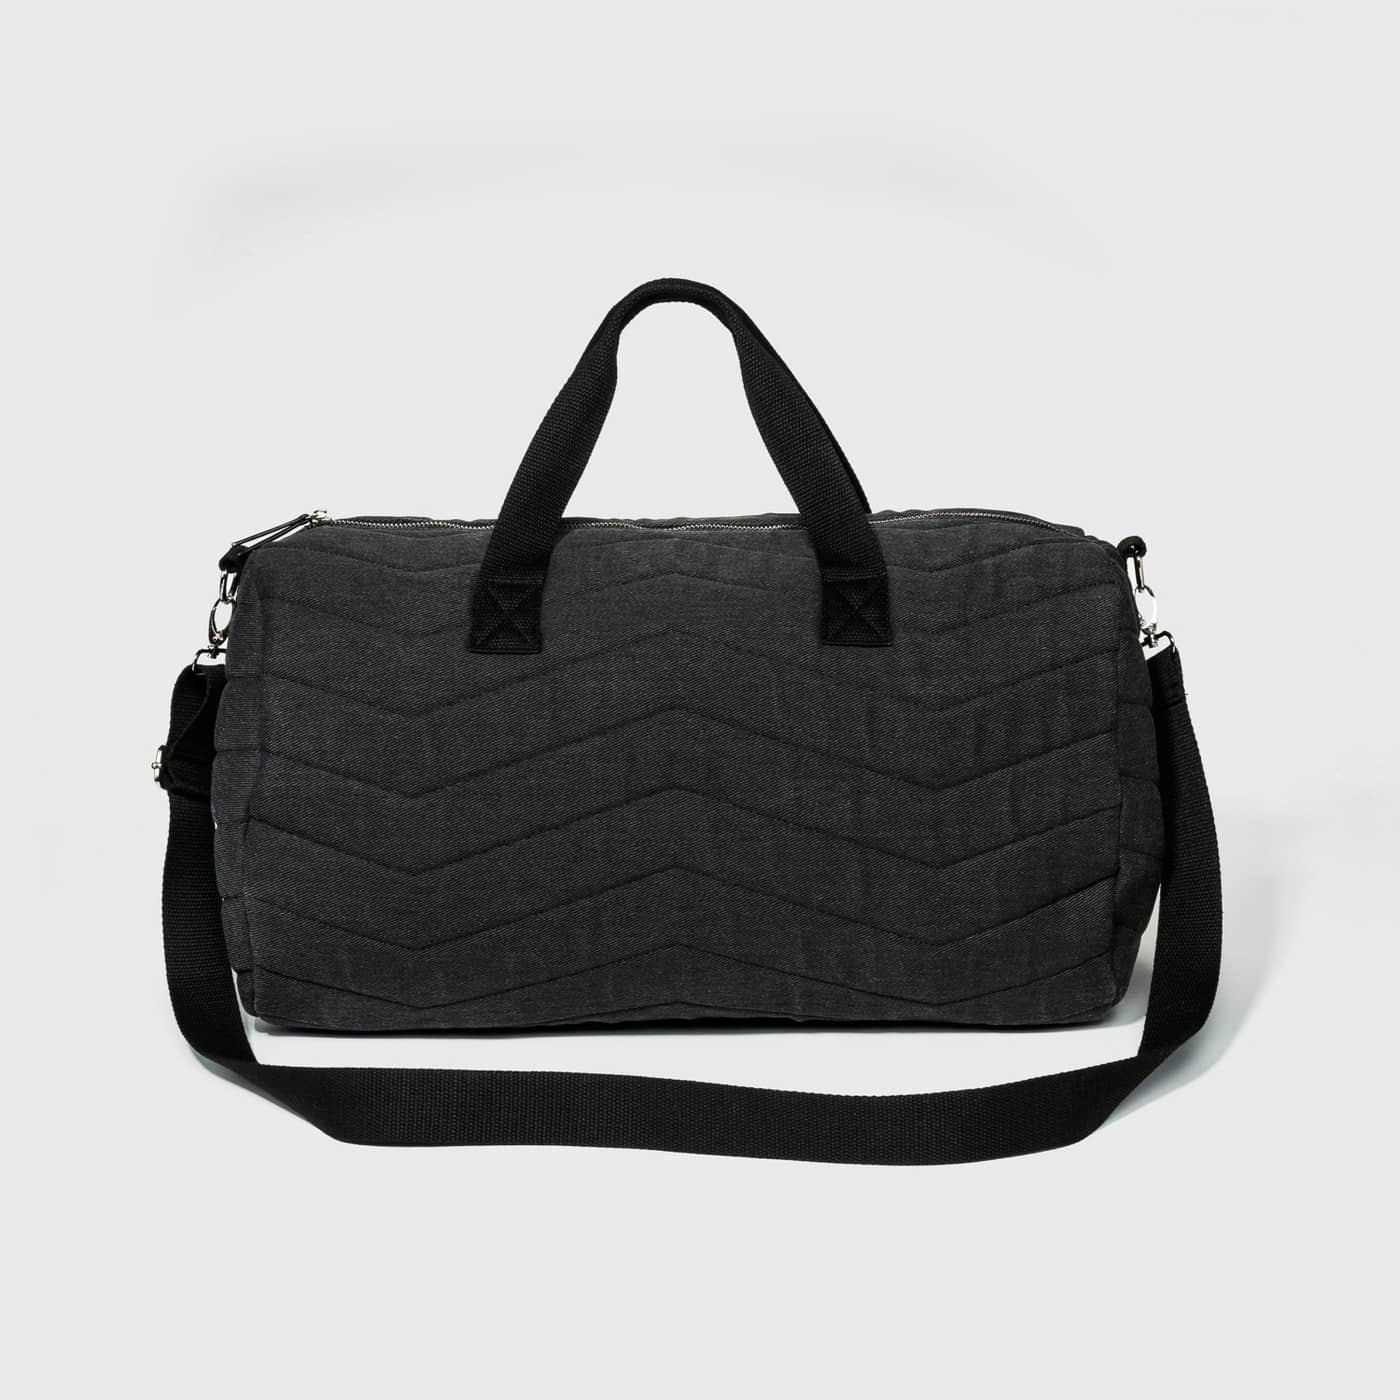 9c4301f794 10 Cool Gym Bags That Don t Look Like Gym Bags